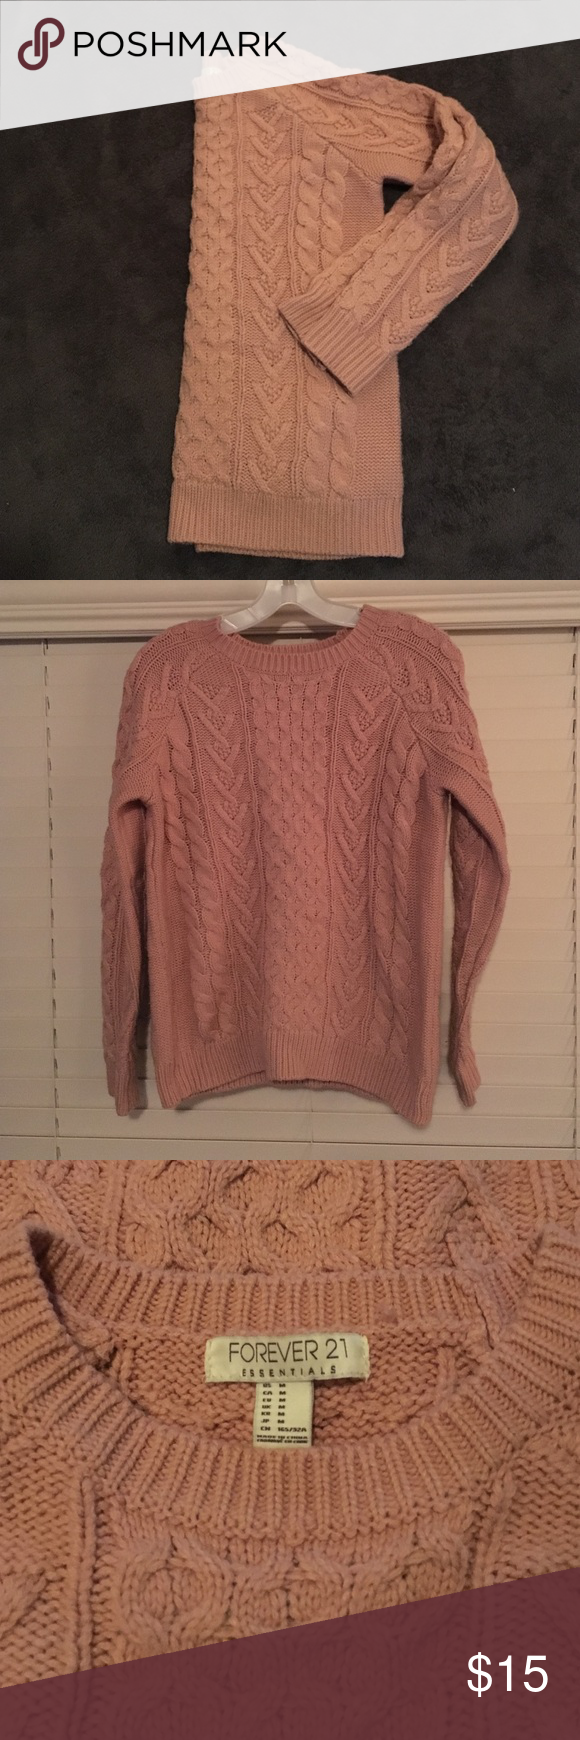 Chinky knit sweater Final price! EUC thick, chunky light pink ...